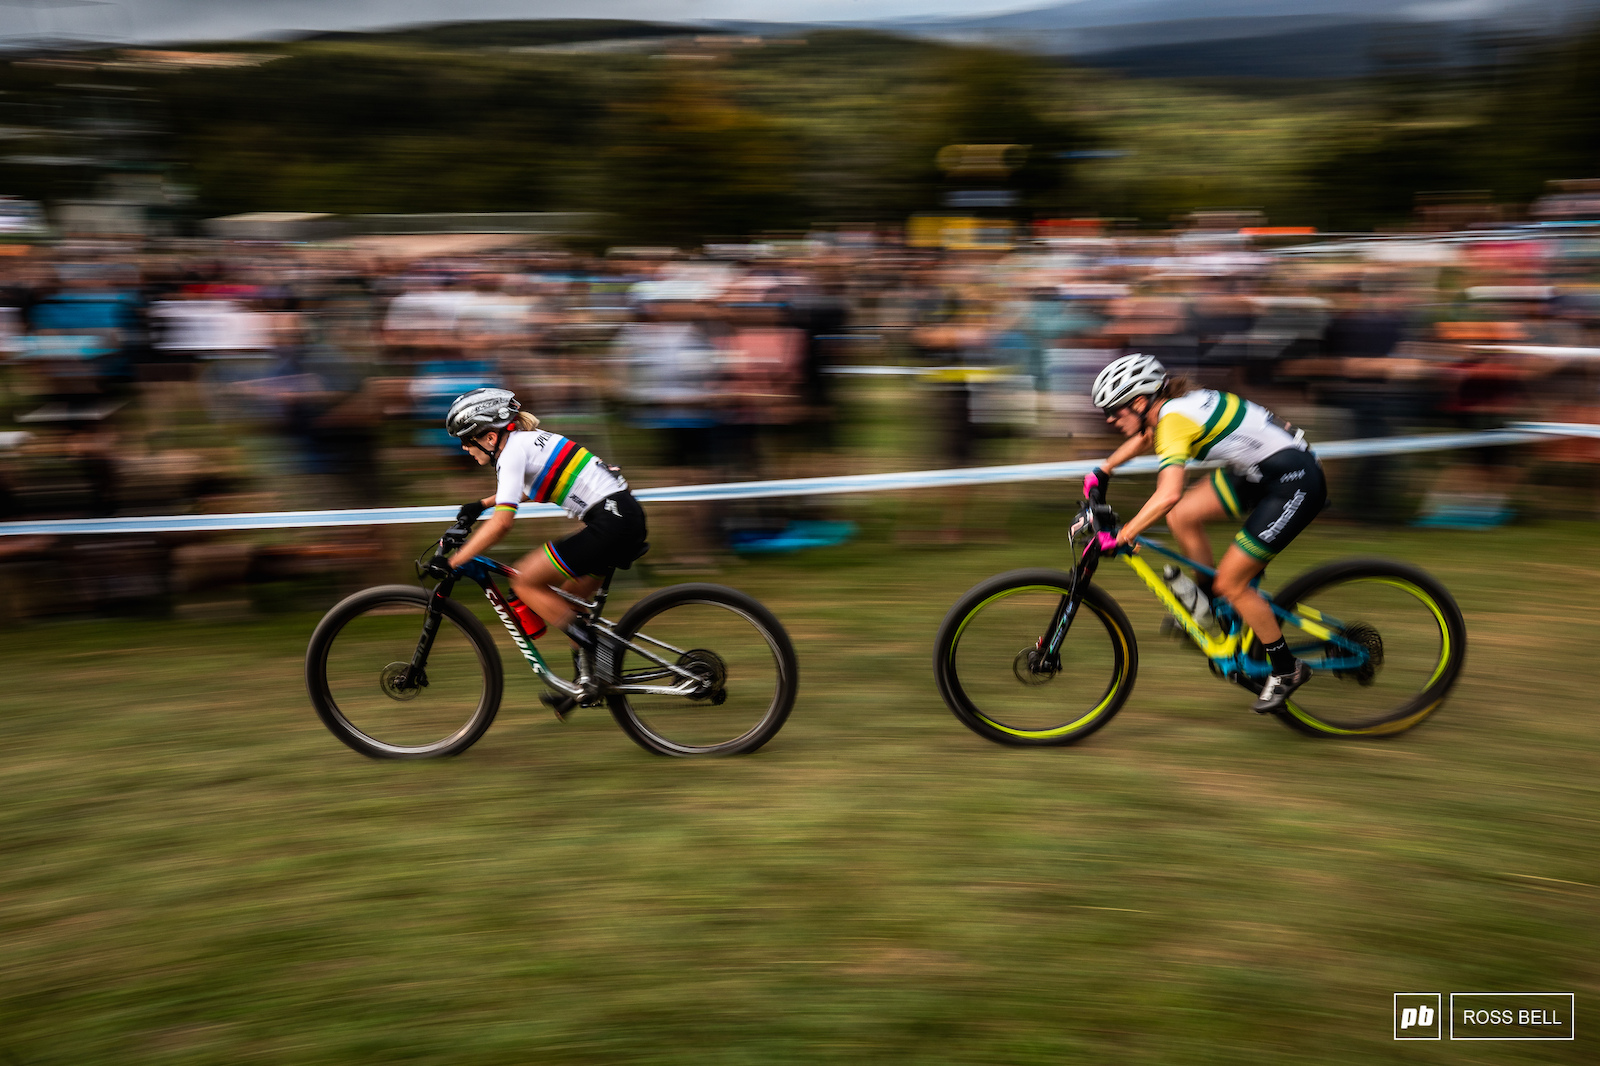 XCC World Champ Sina Frei with Rebecca McConnell in tow.